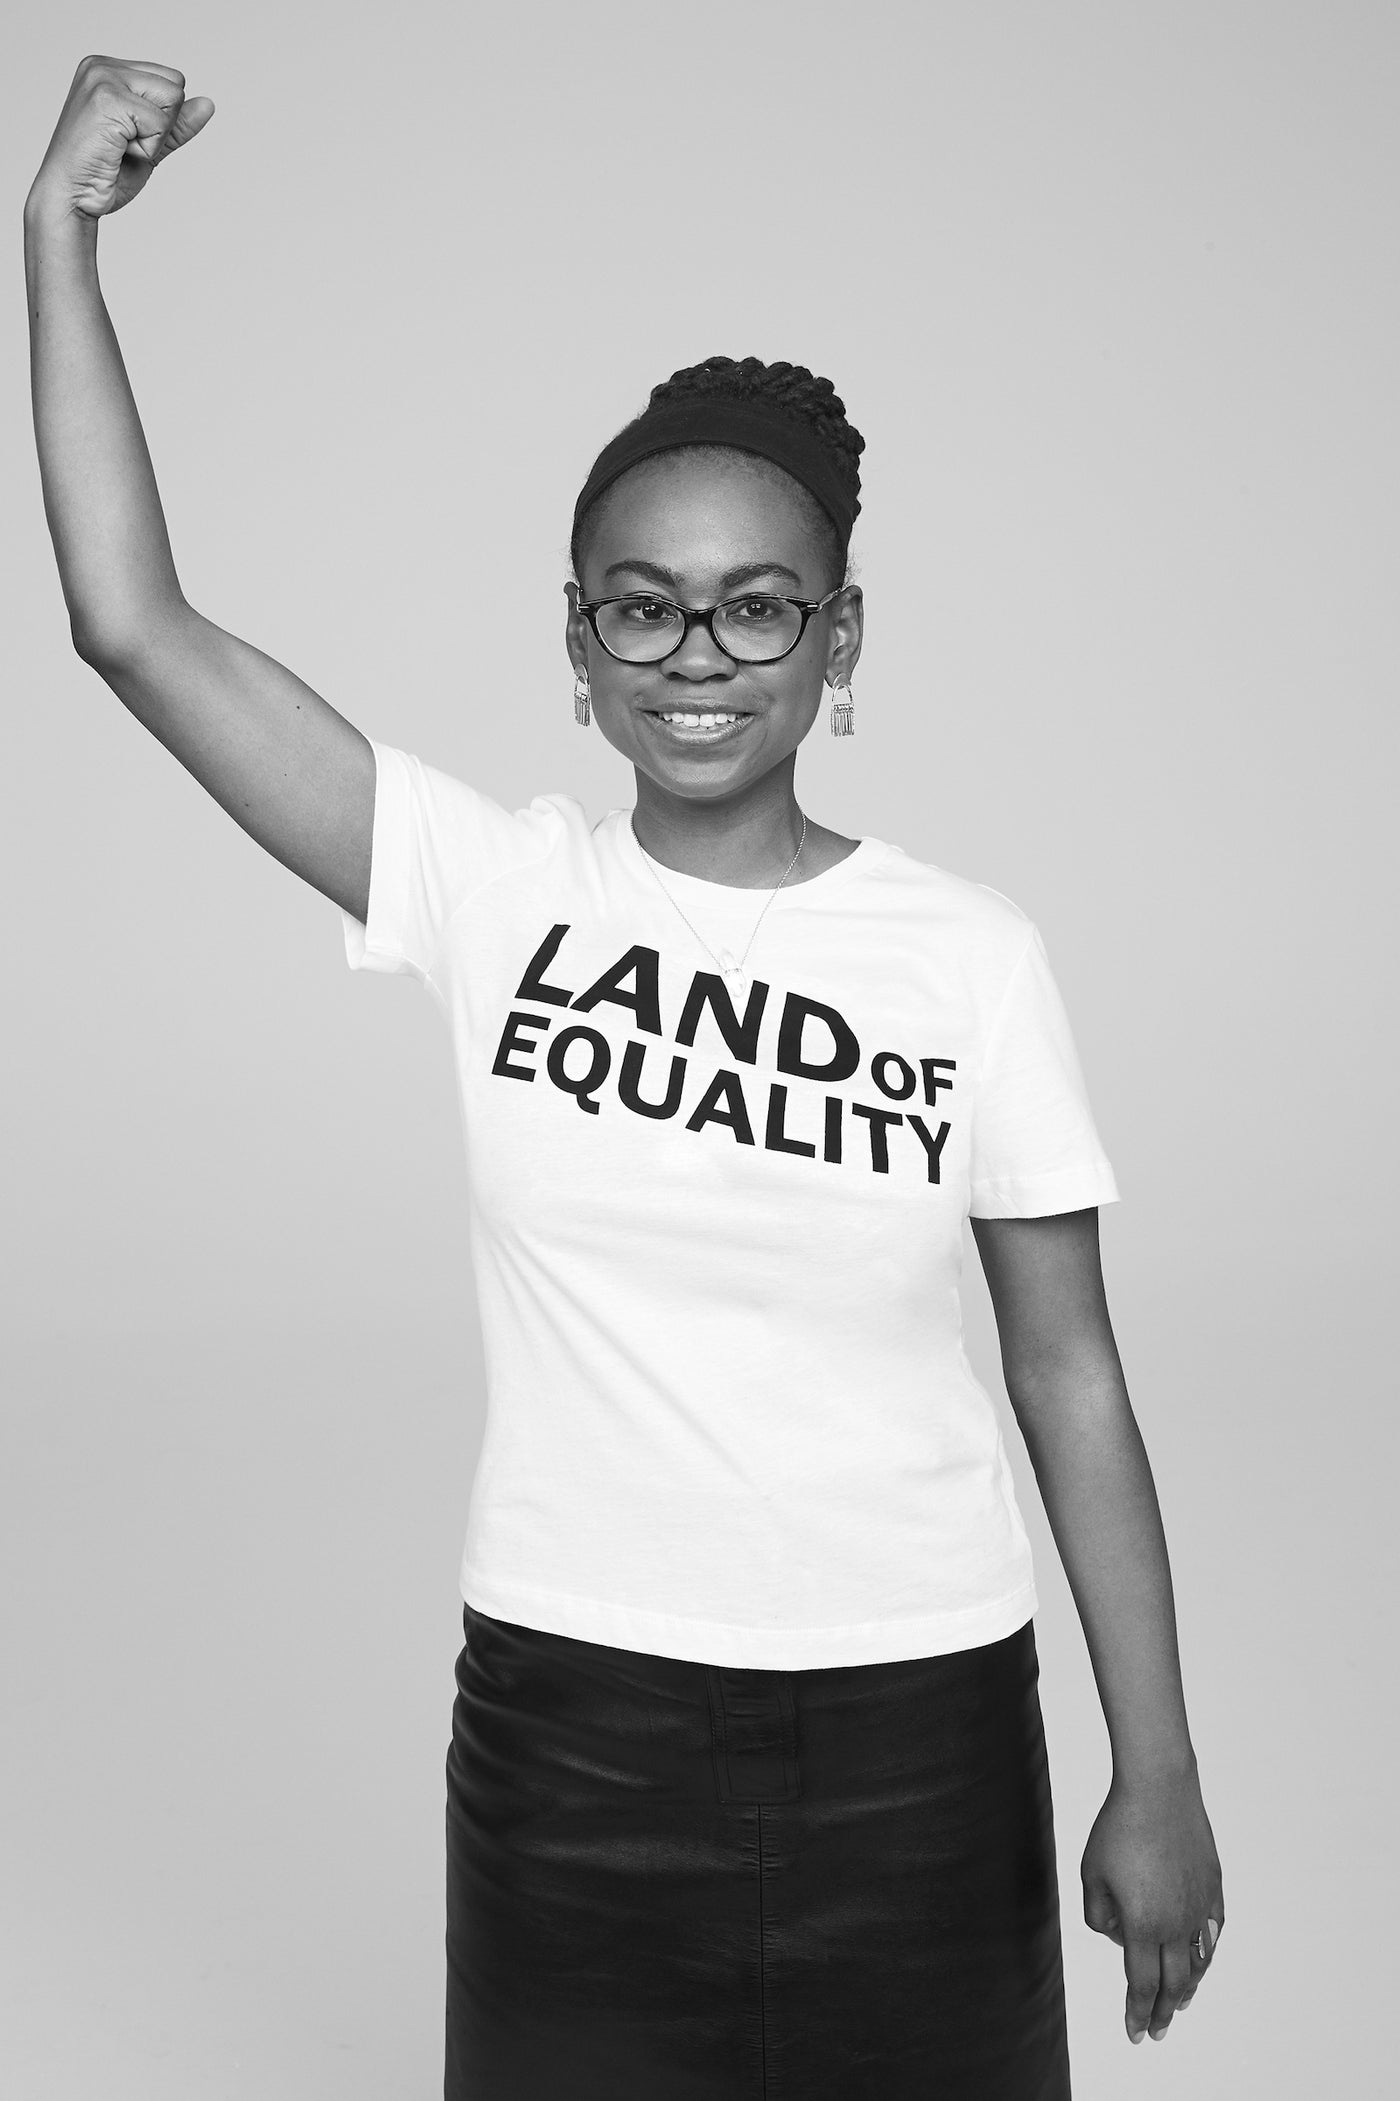 USOW LAND OF EQUALITY TEE